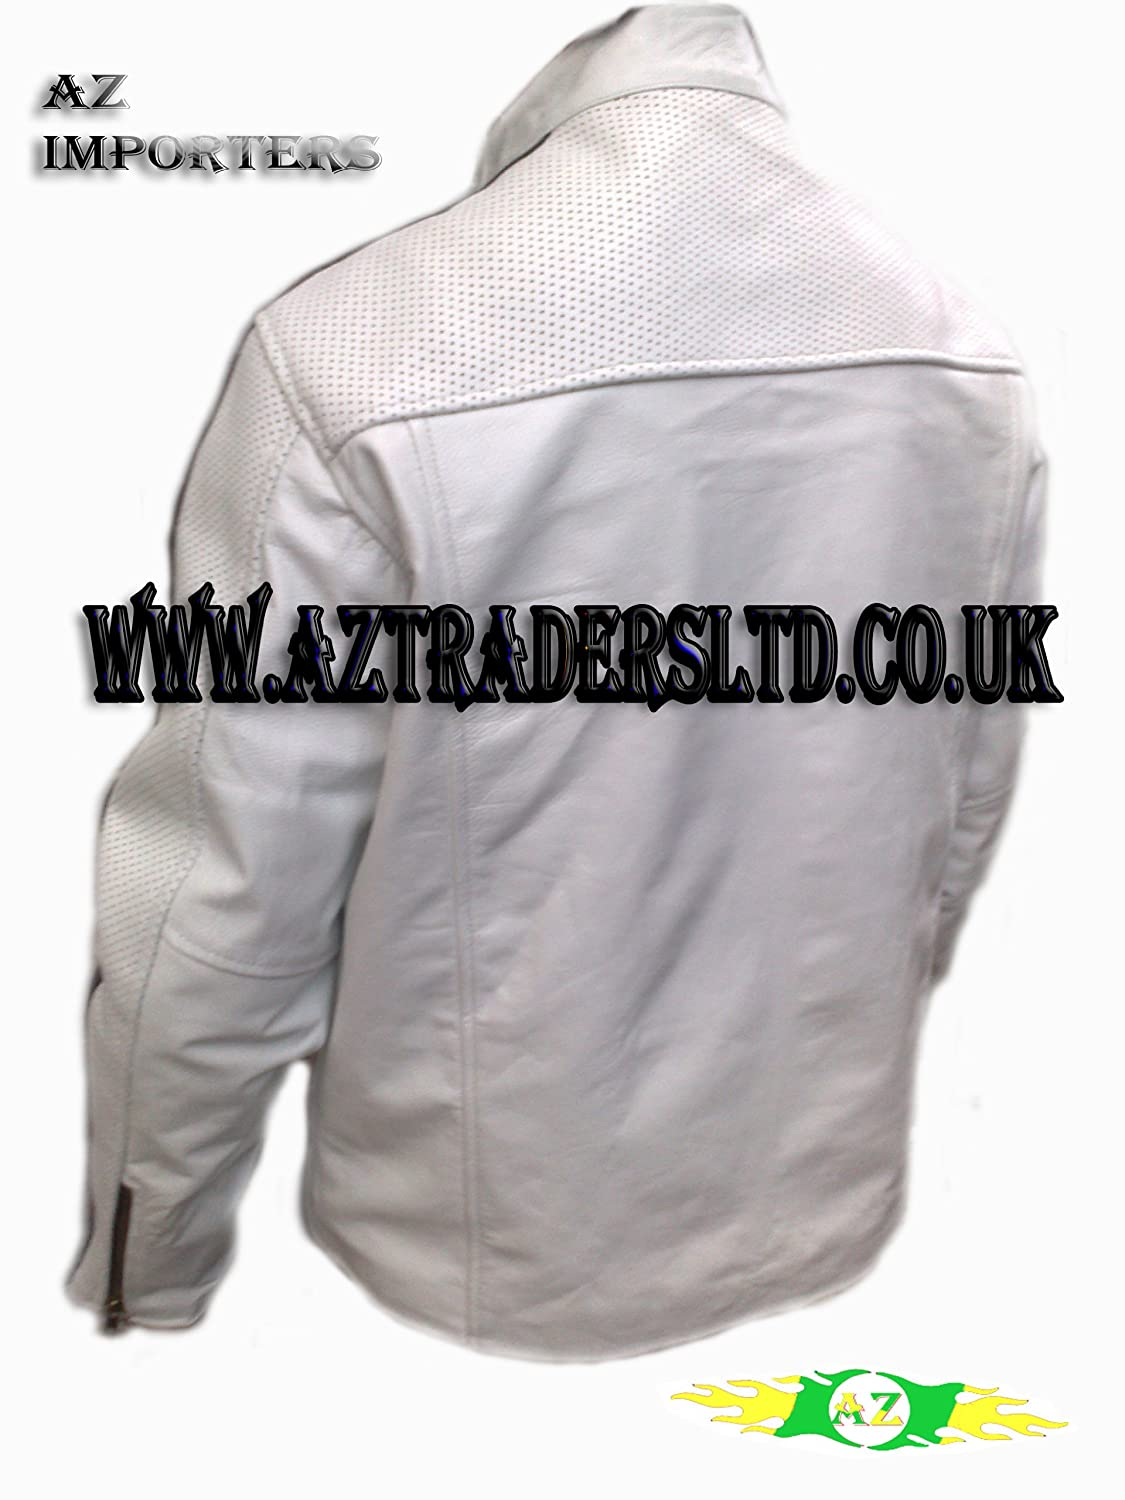 AZ Men's Cafe Racer White Leather Jacket with Black Stripes - Size Large (Europe Size 42)